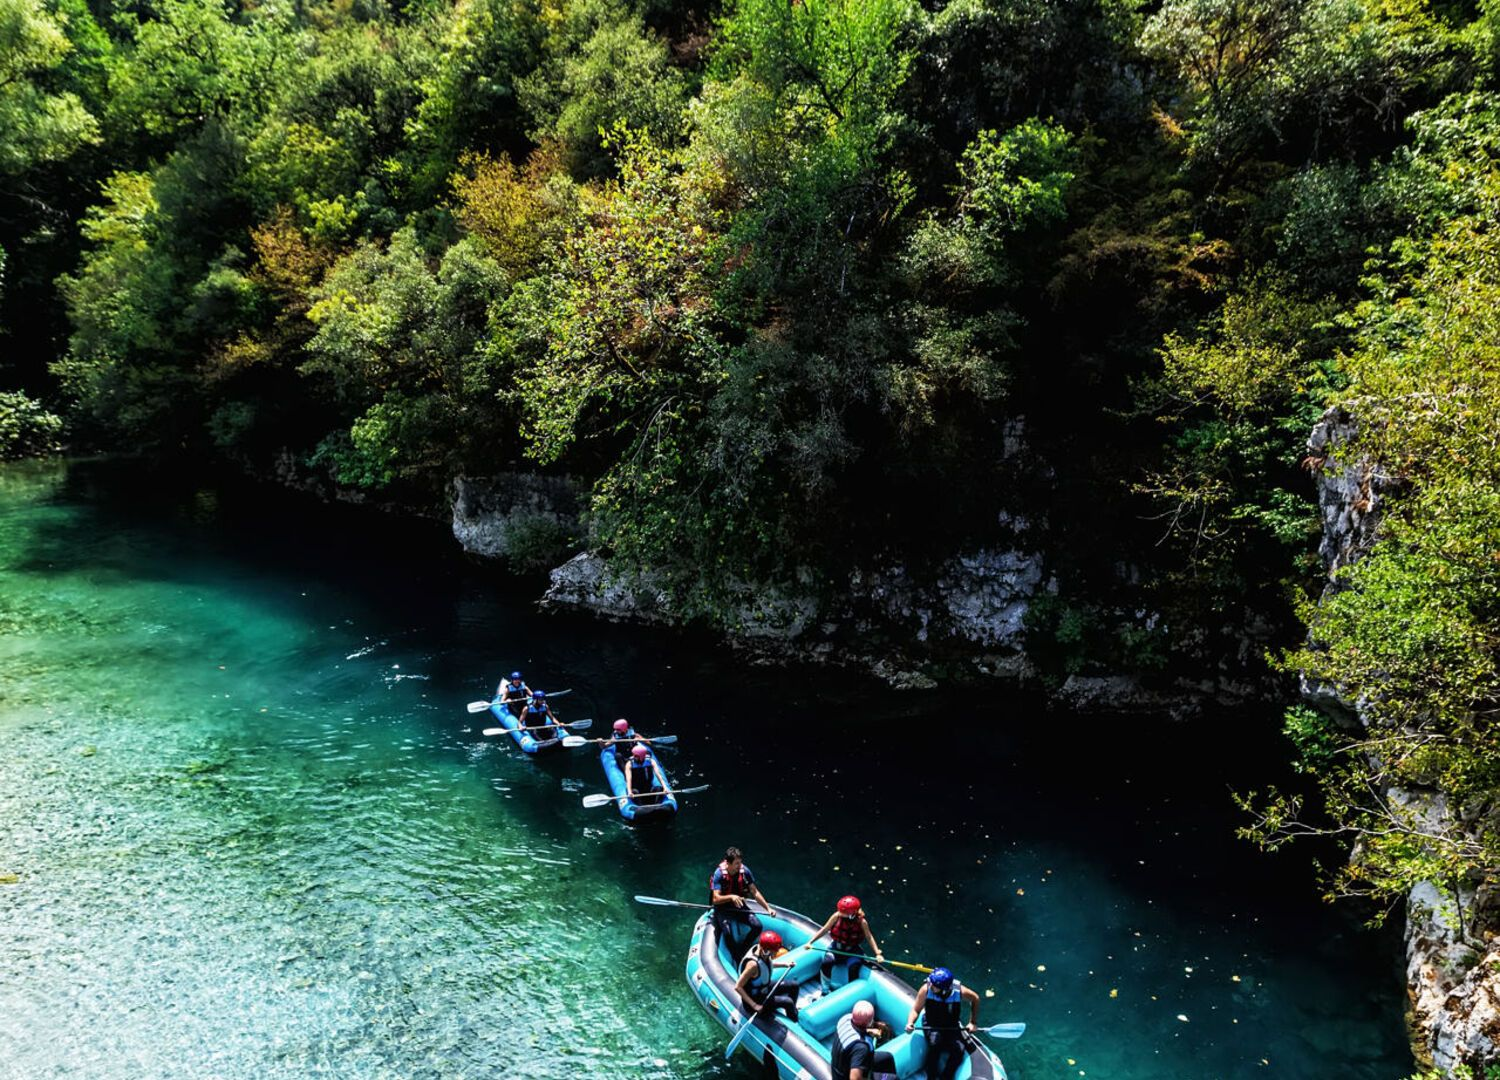 Adventure teams doing rafting on the cold waters of the Voidomatis River in Zagori. Voidomatis river is one of the most popular among rafters in Greece